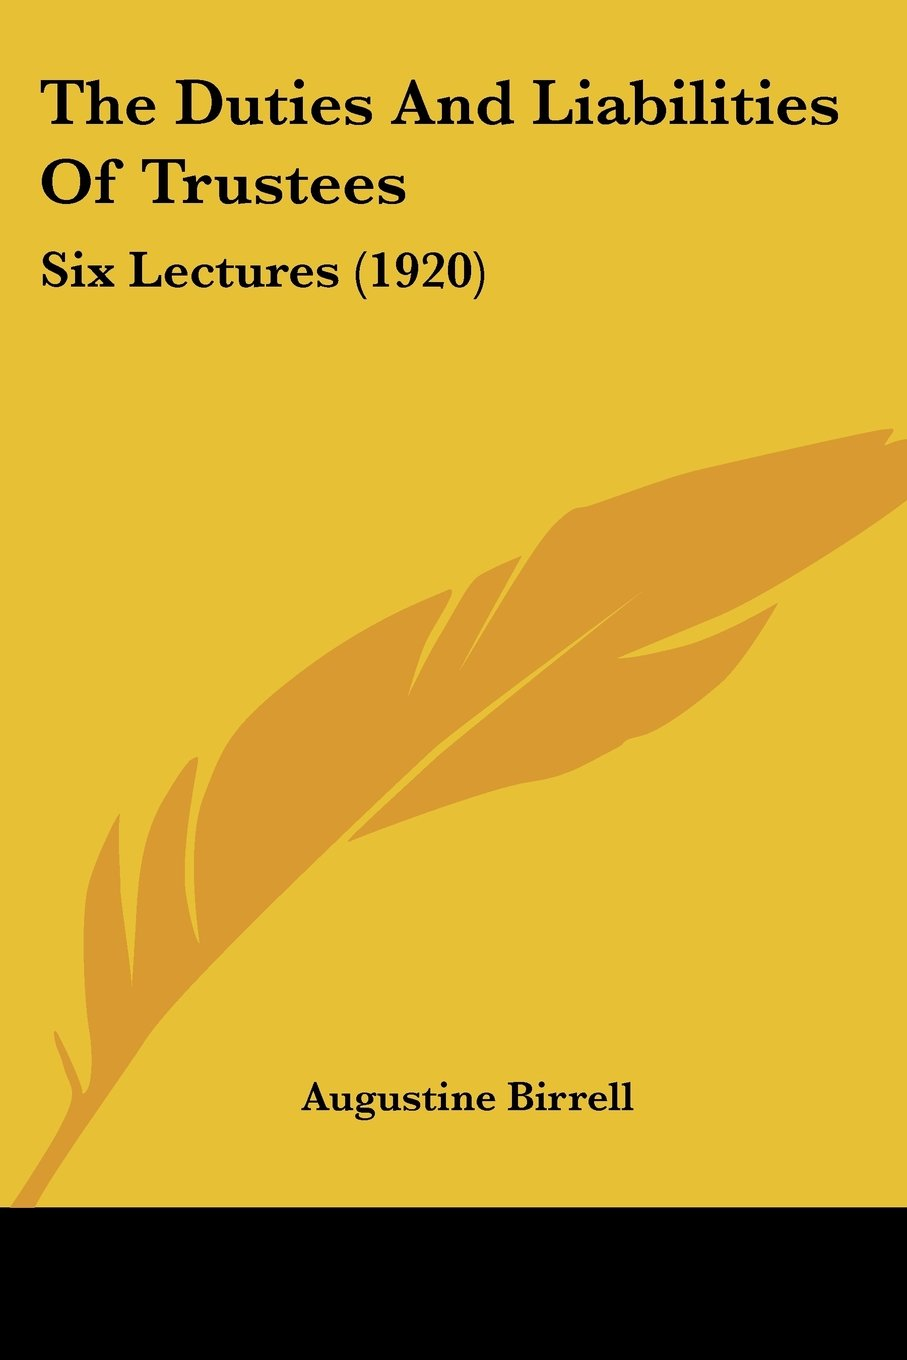 The Duties And Liabilities Of Trustees: Six Lectures (1920) pdf